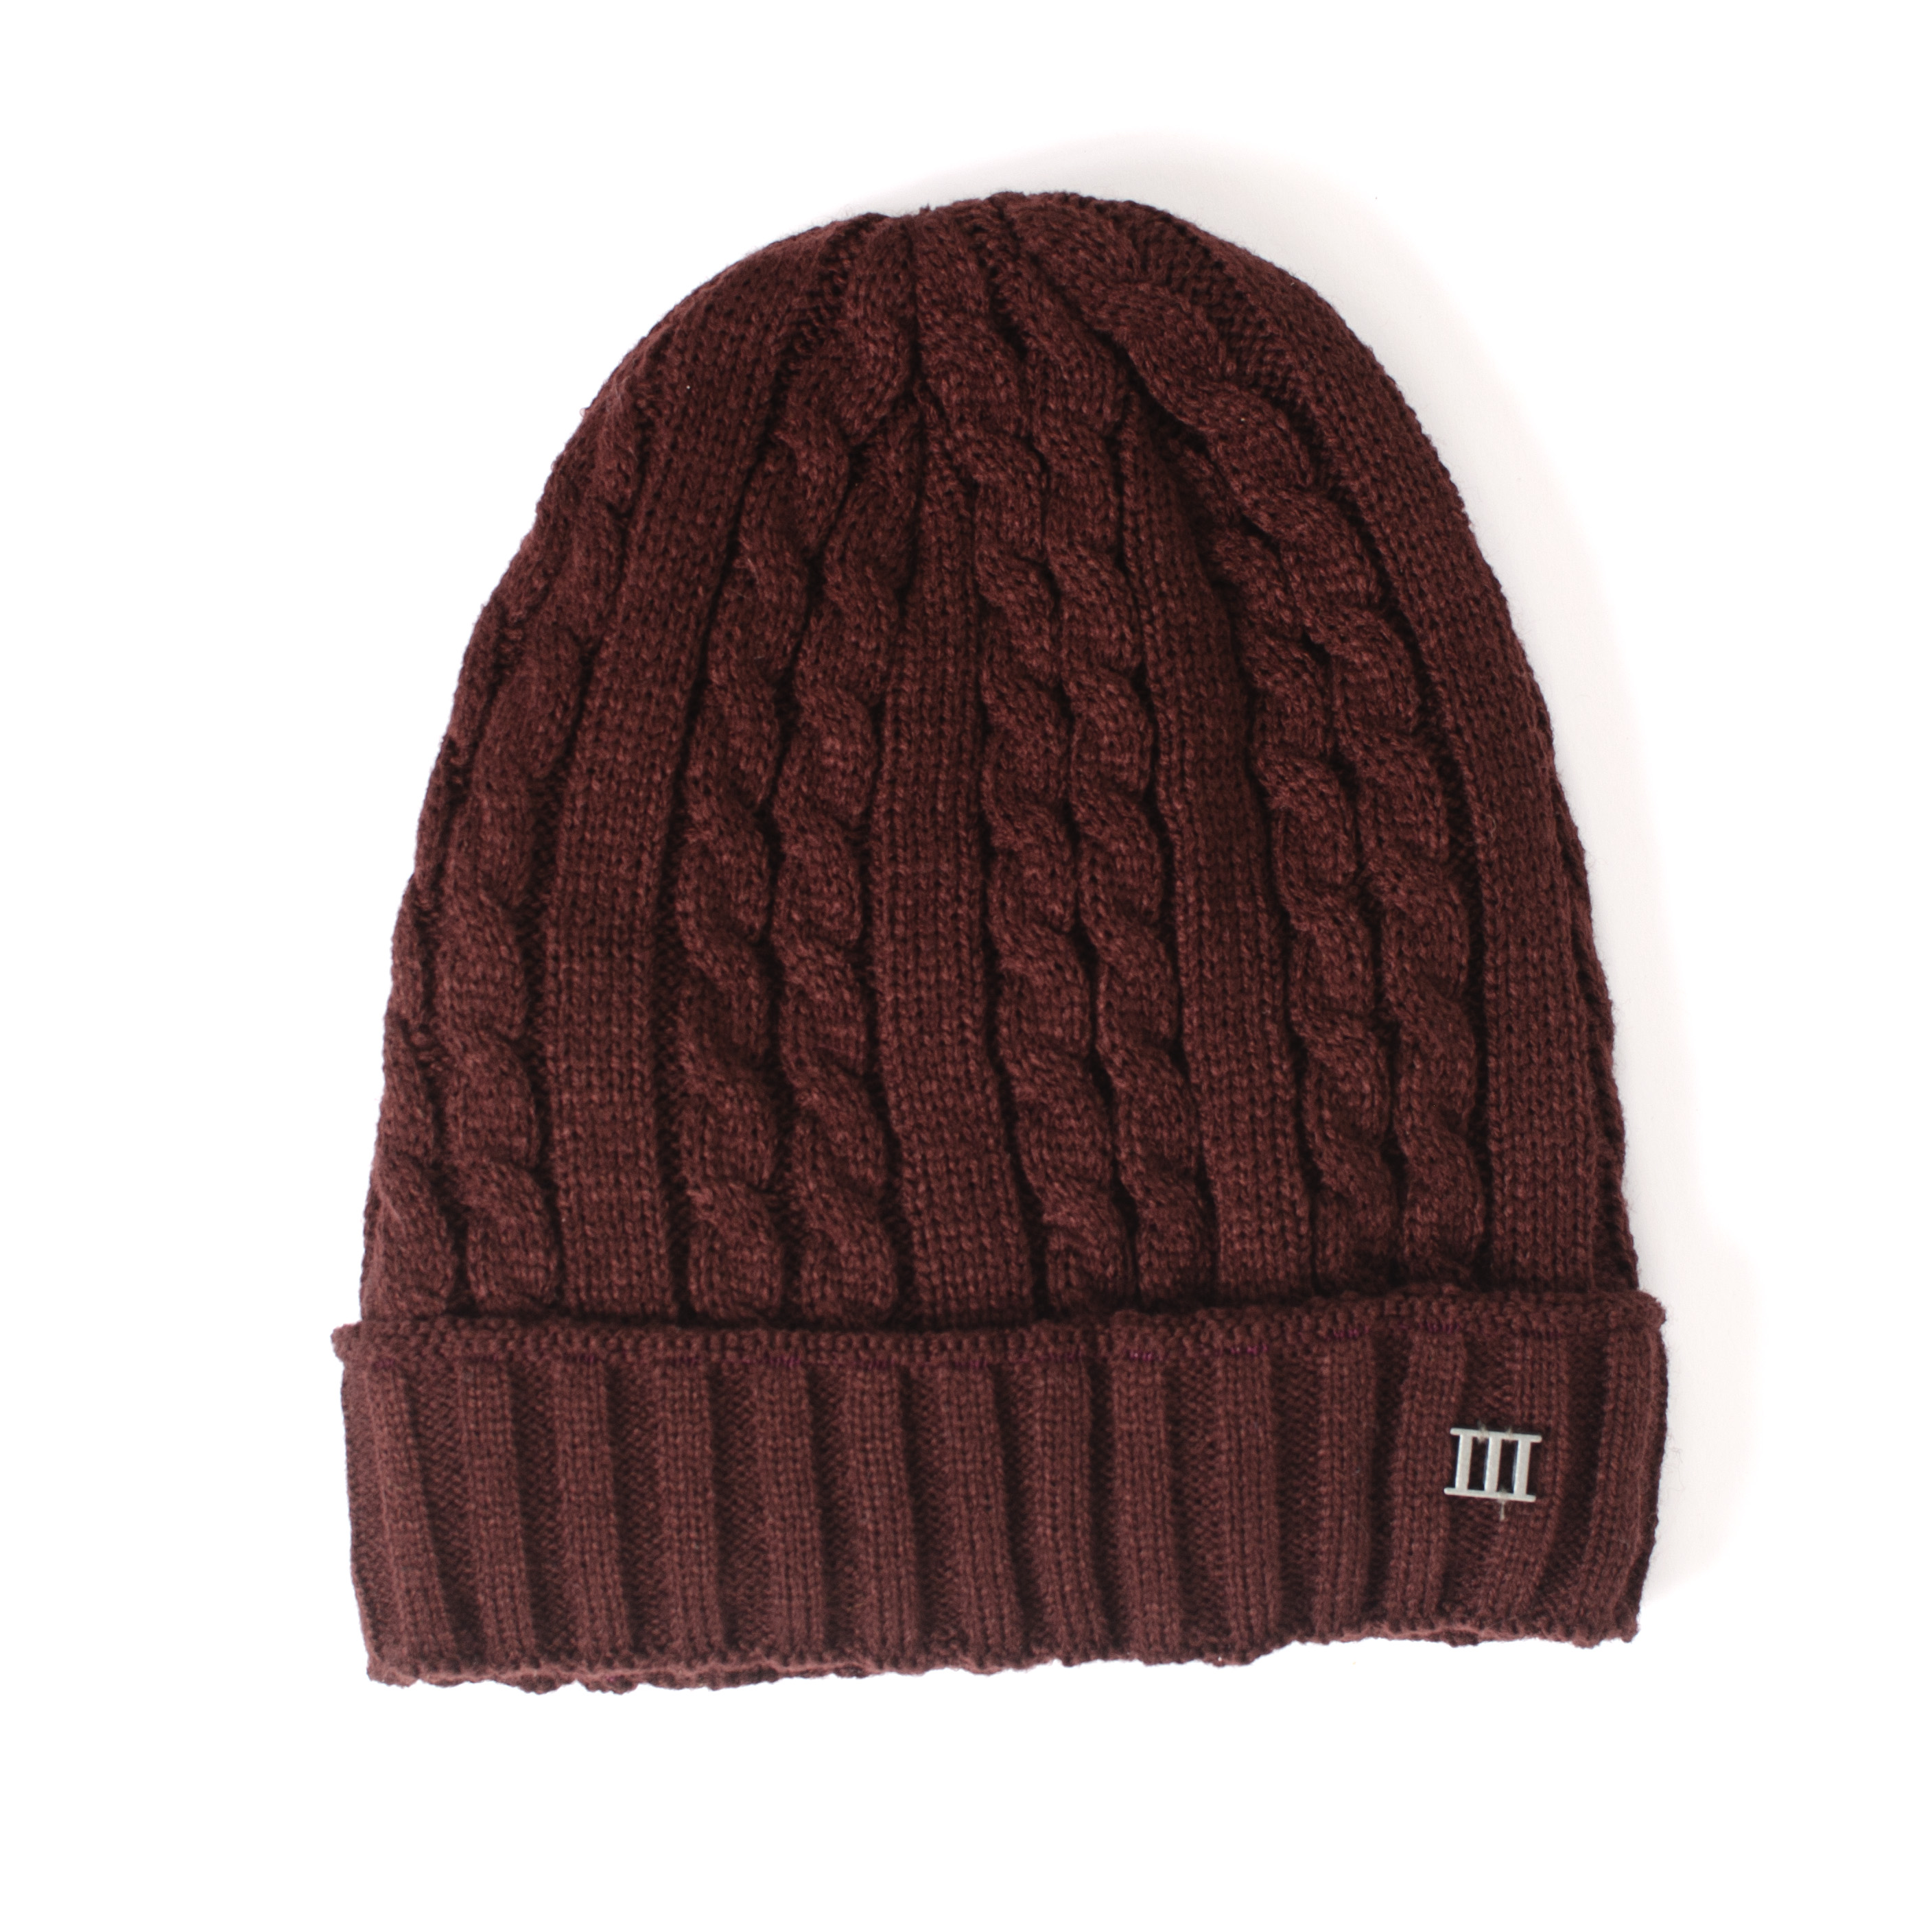 Jauk | Cable knitted beanie with cuff burgundy